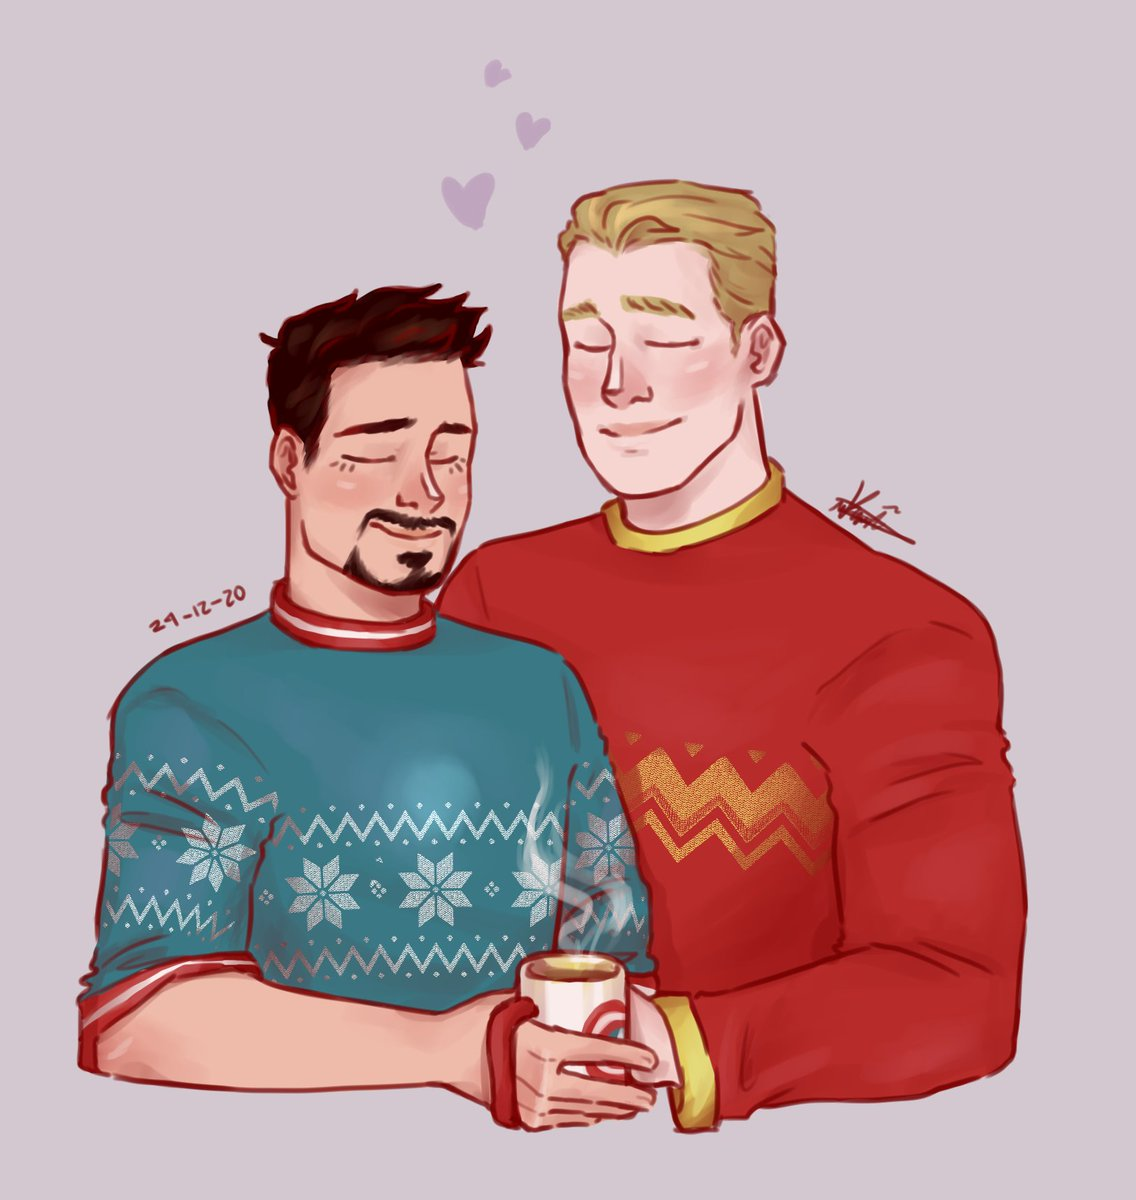 Mery Christmas and holidays to all of you!! ✨💖I hope you have a wonderful day! 🥺💙❤️ This is actually a redraw of my last year stevetony drawing and I wanted to remake it #stevetony #stony